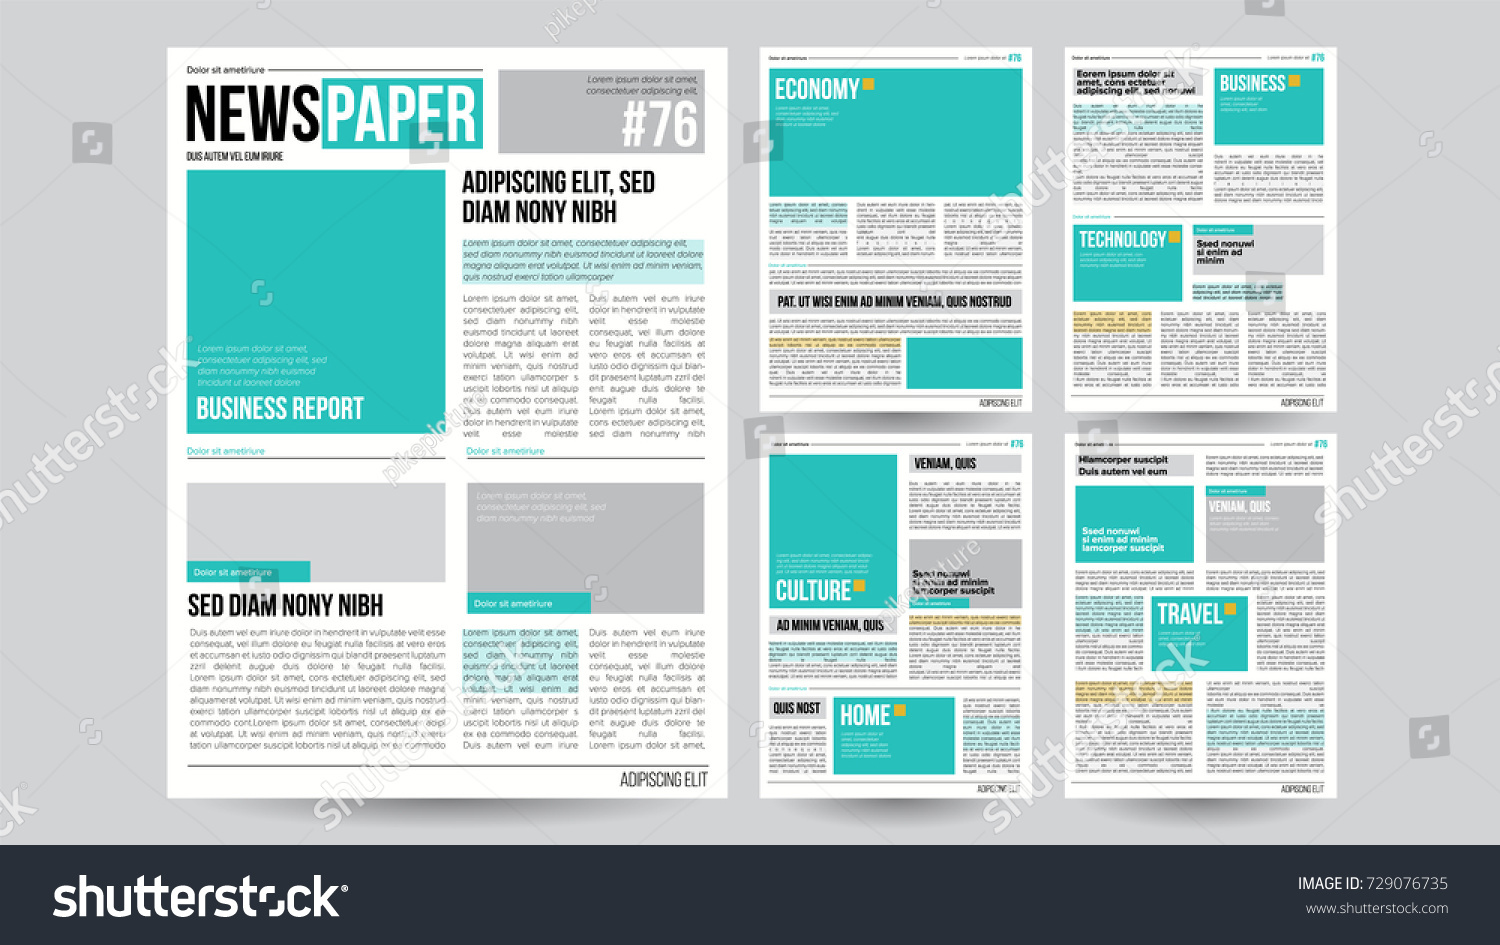 Newspaper design template images articles business stock newspaper design template images articles business information opening editable headlines text articles saigontimesfo